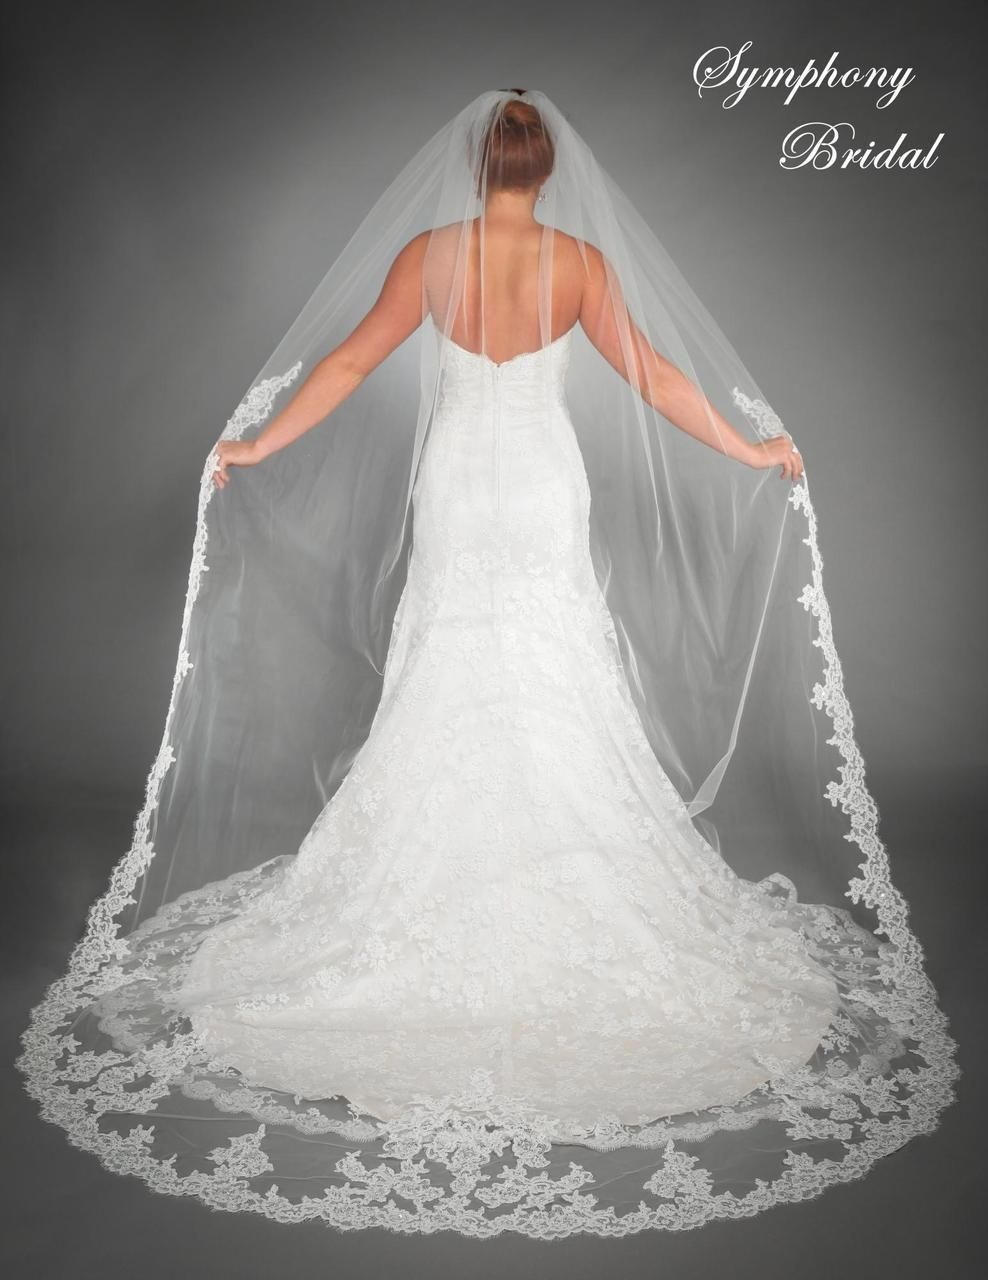 Affordable Elegance Bridal Lace Edge Cathedral Length Wedding Veil 6435vl By Symphony 441 49